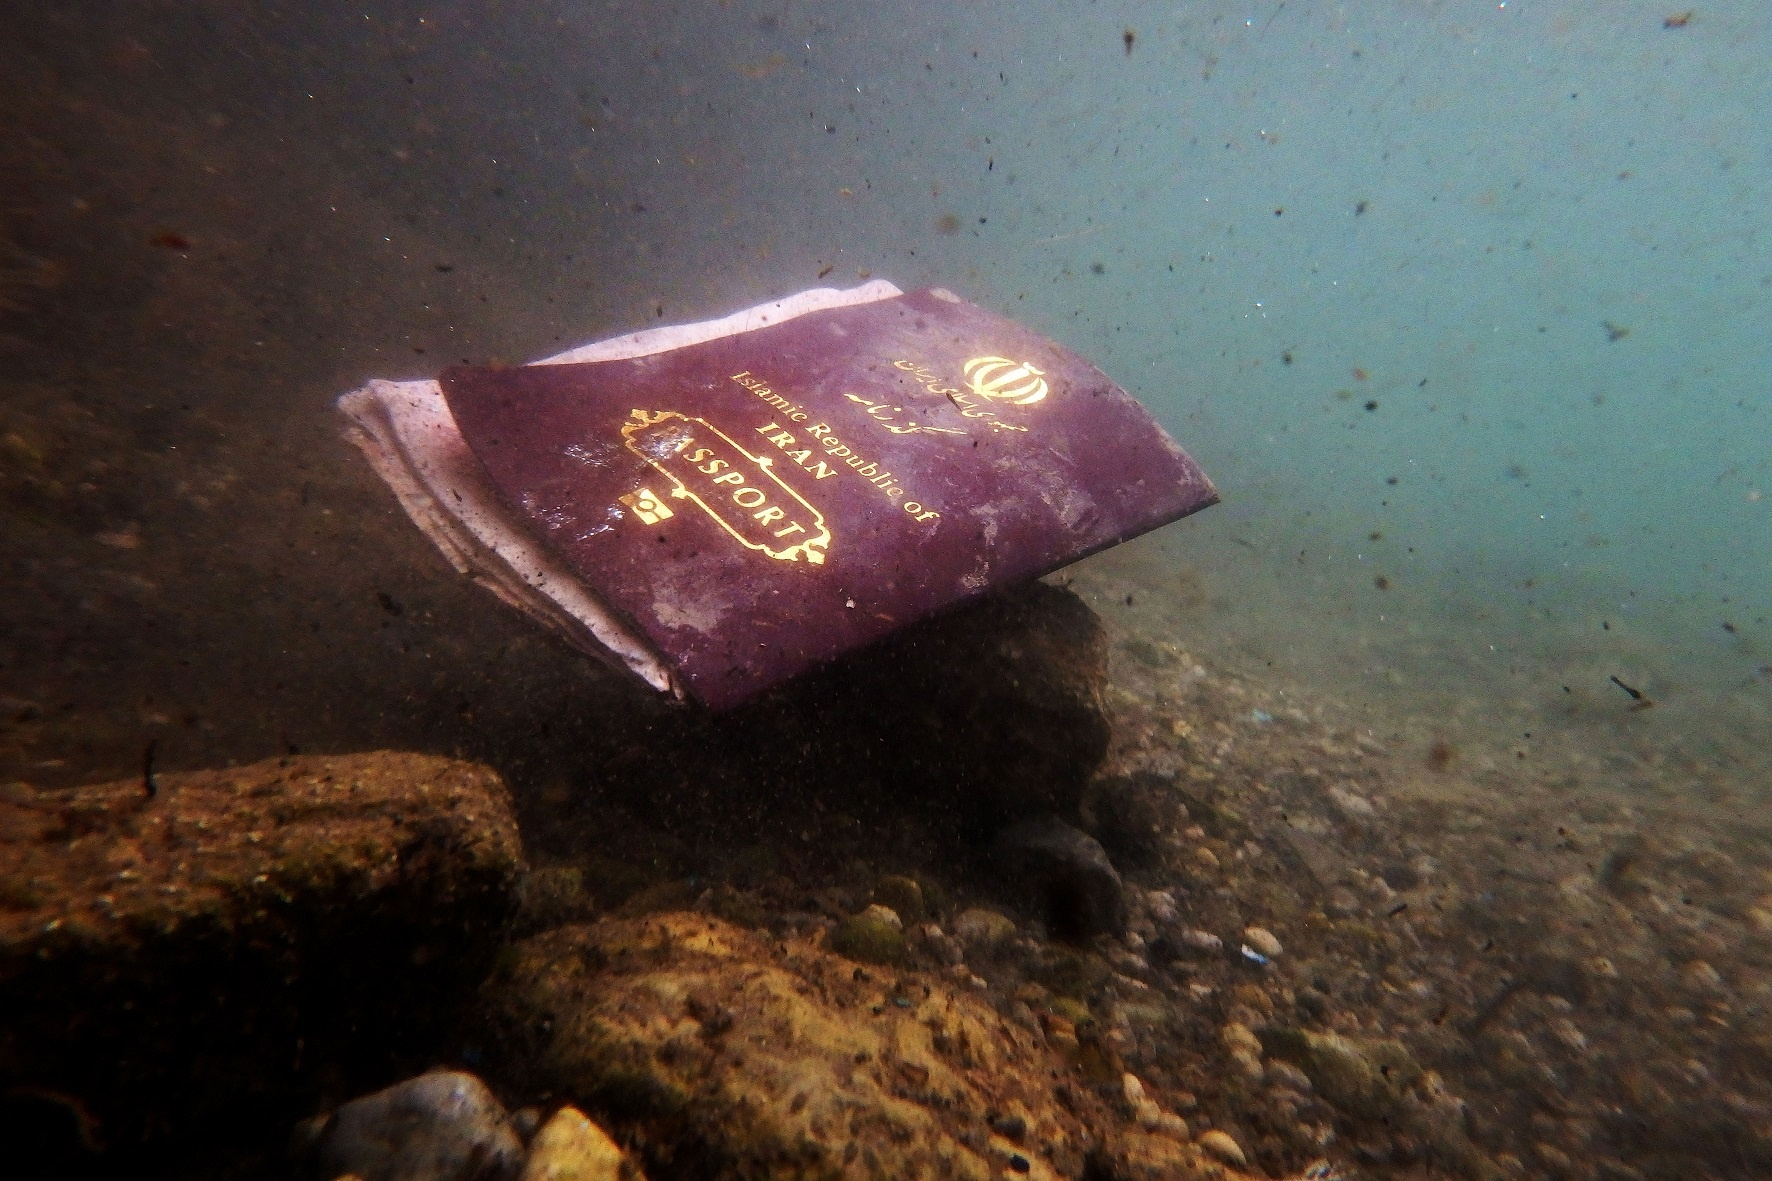 Passport (c) Under the sea